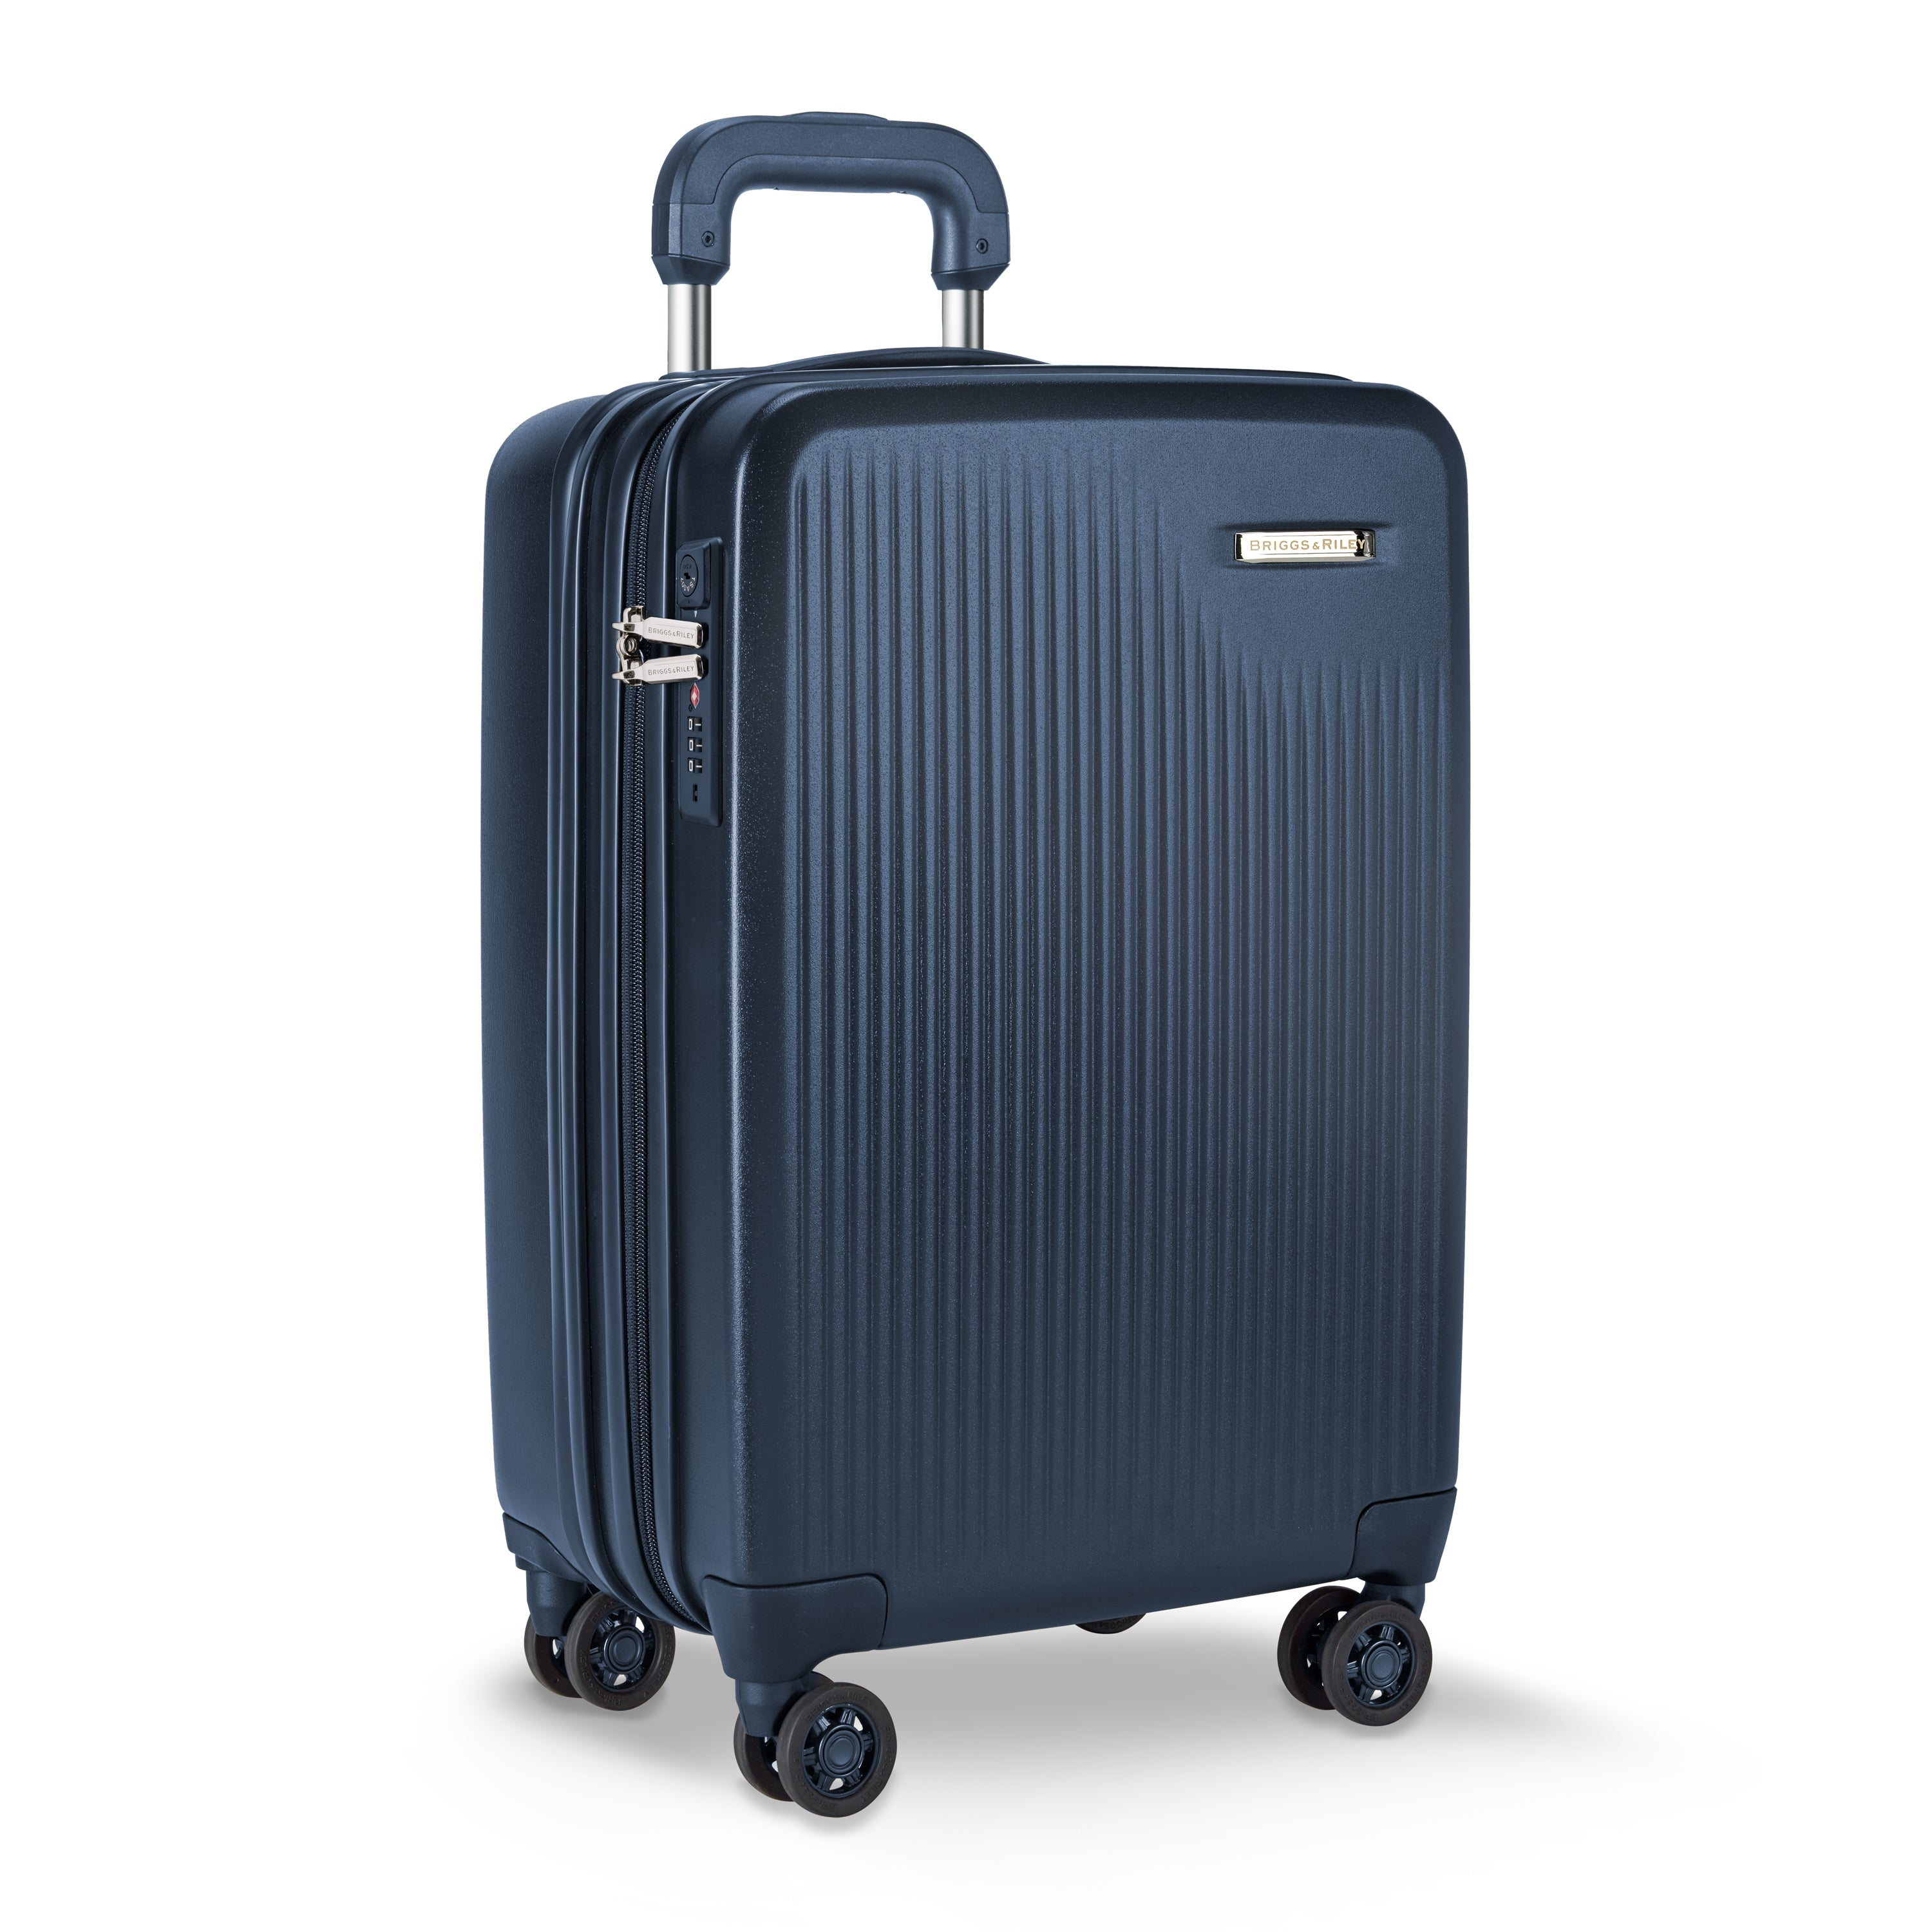 "Briggs & Riley Sympatico 21"" International Carry-On Expandable Spinner - Navy 